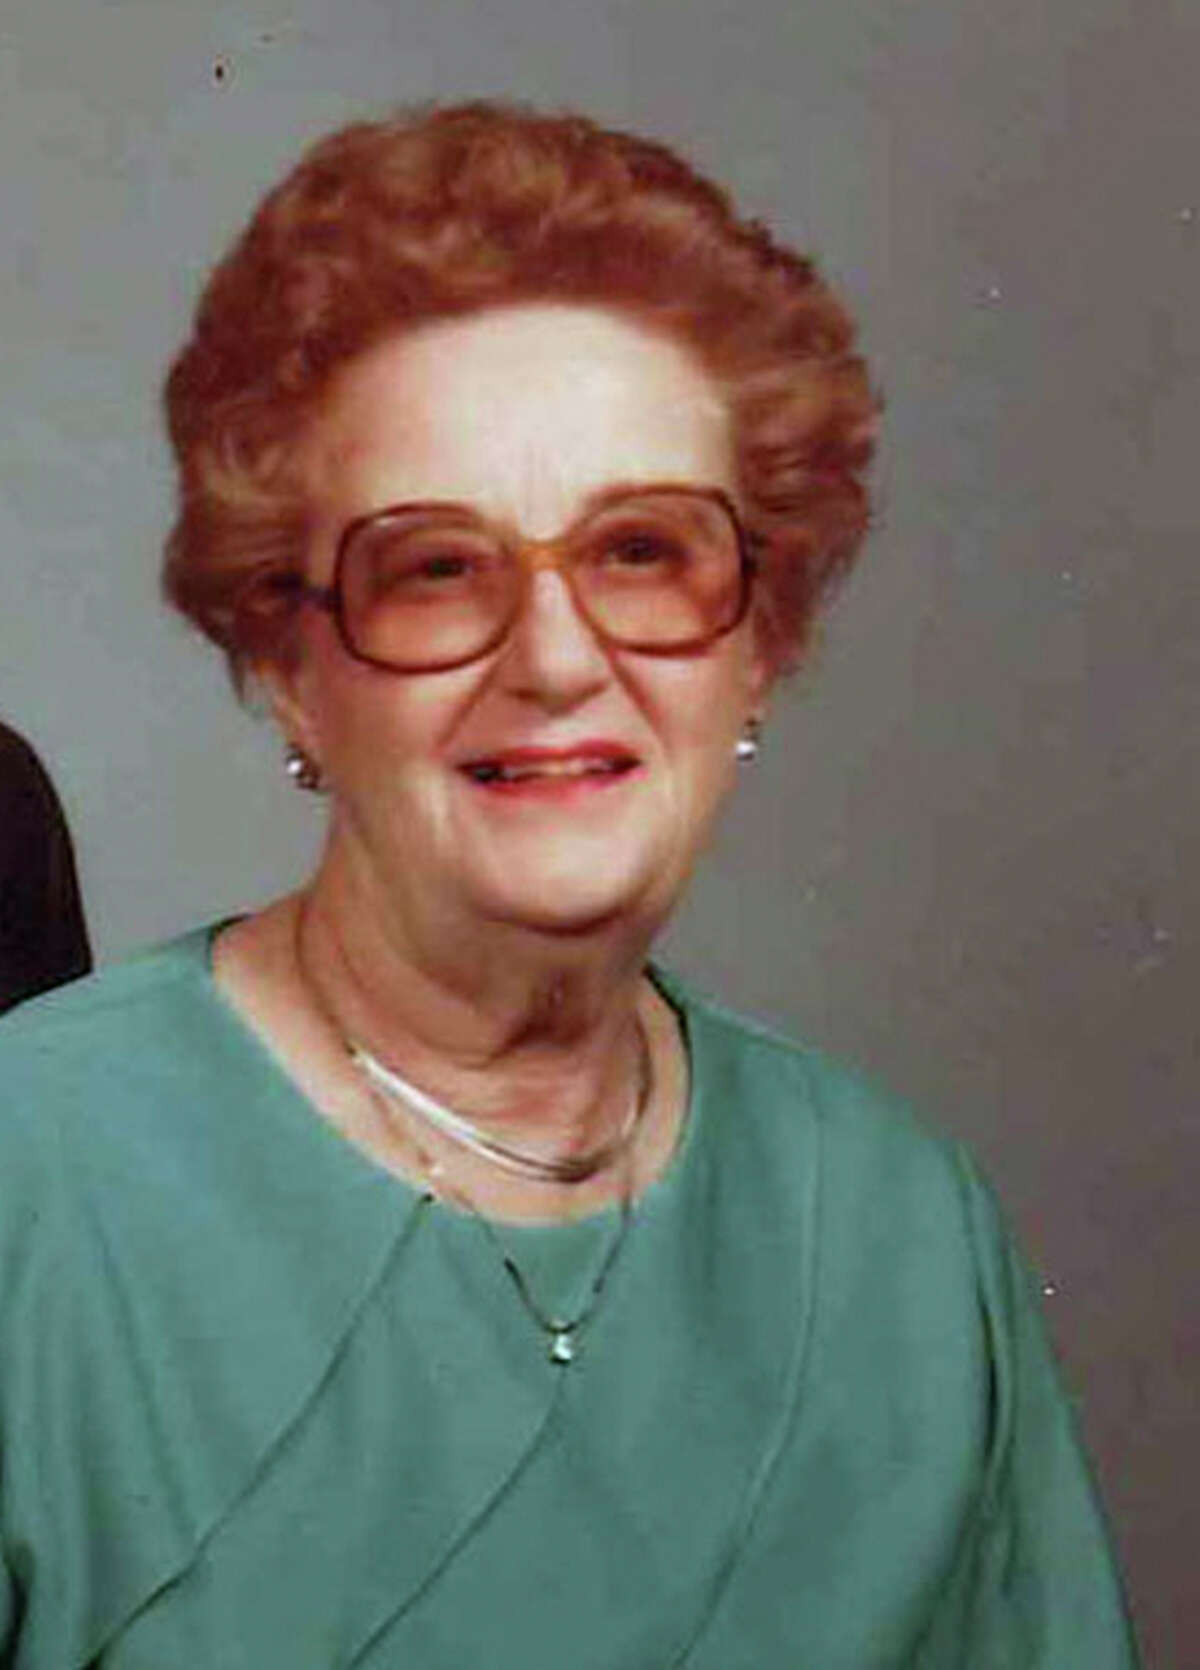 Lucille Wohlfarth was a council member and mayor of Balcones Heights between 1992 and 2005. She died on Jan. 30 at the age of 94.More: Wohlfarth was a pillar of Balcones Heights